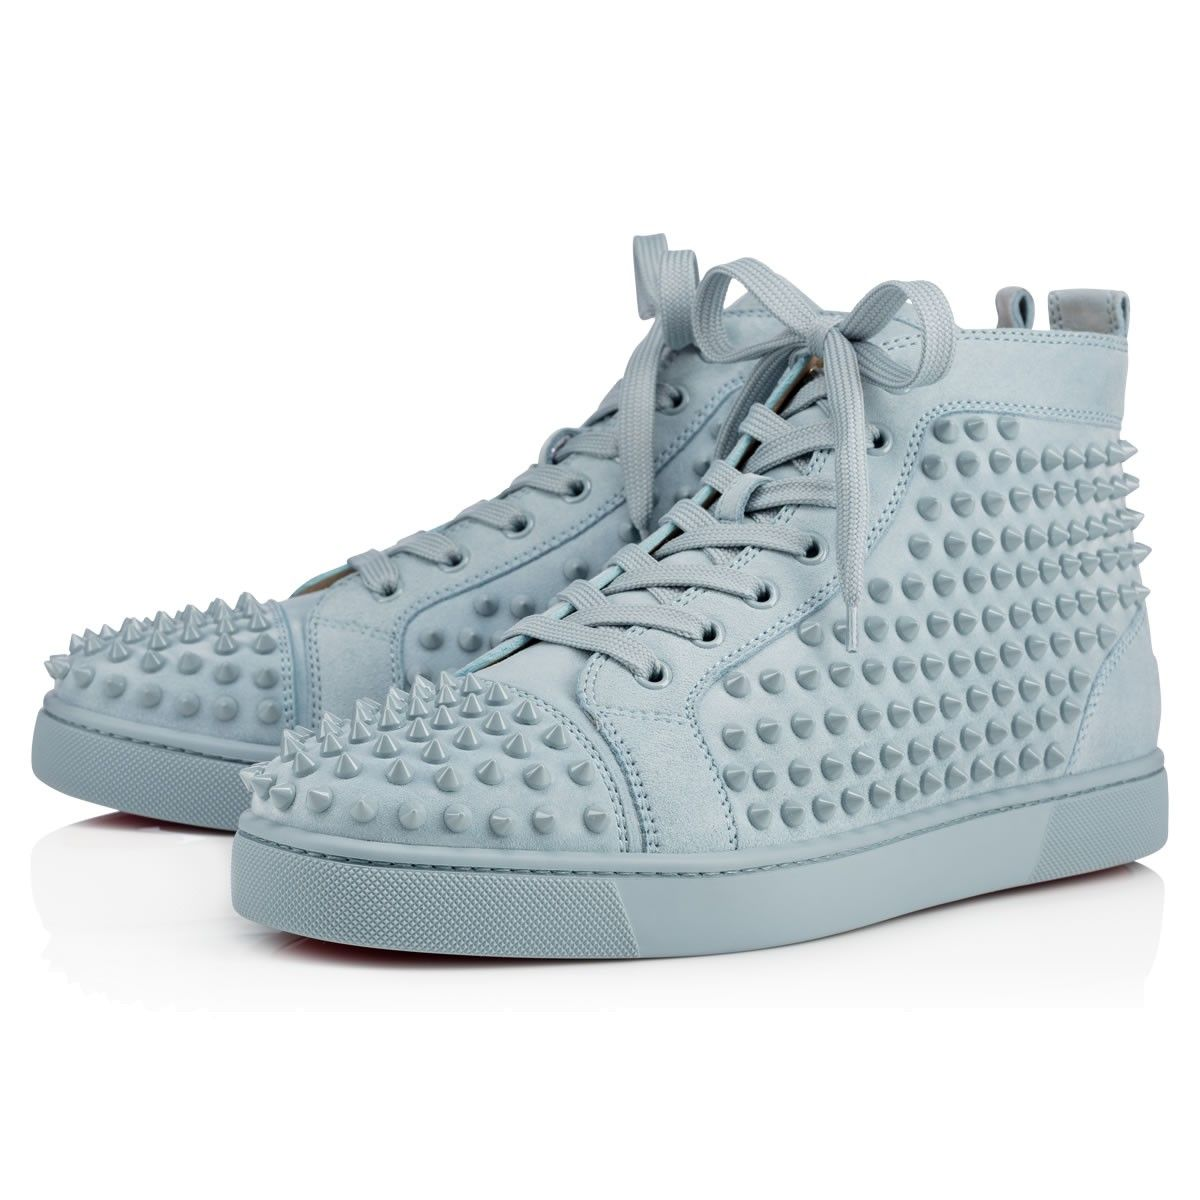 f8a0a674802 Shoes - Louis Spikes Men s Flat - Christian Louboutin